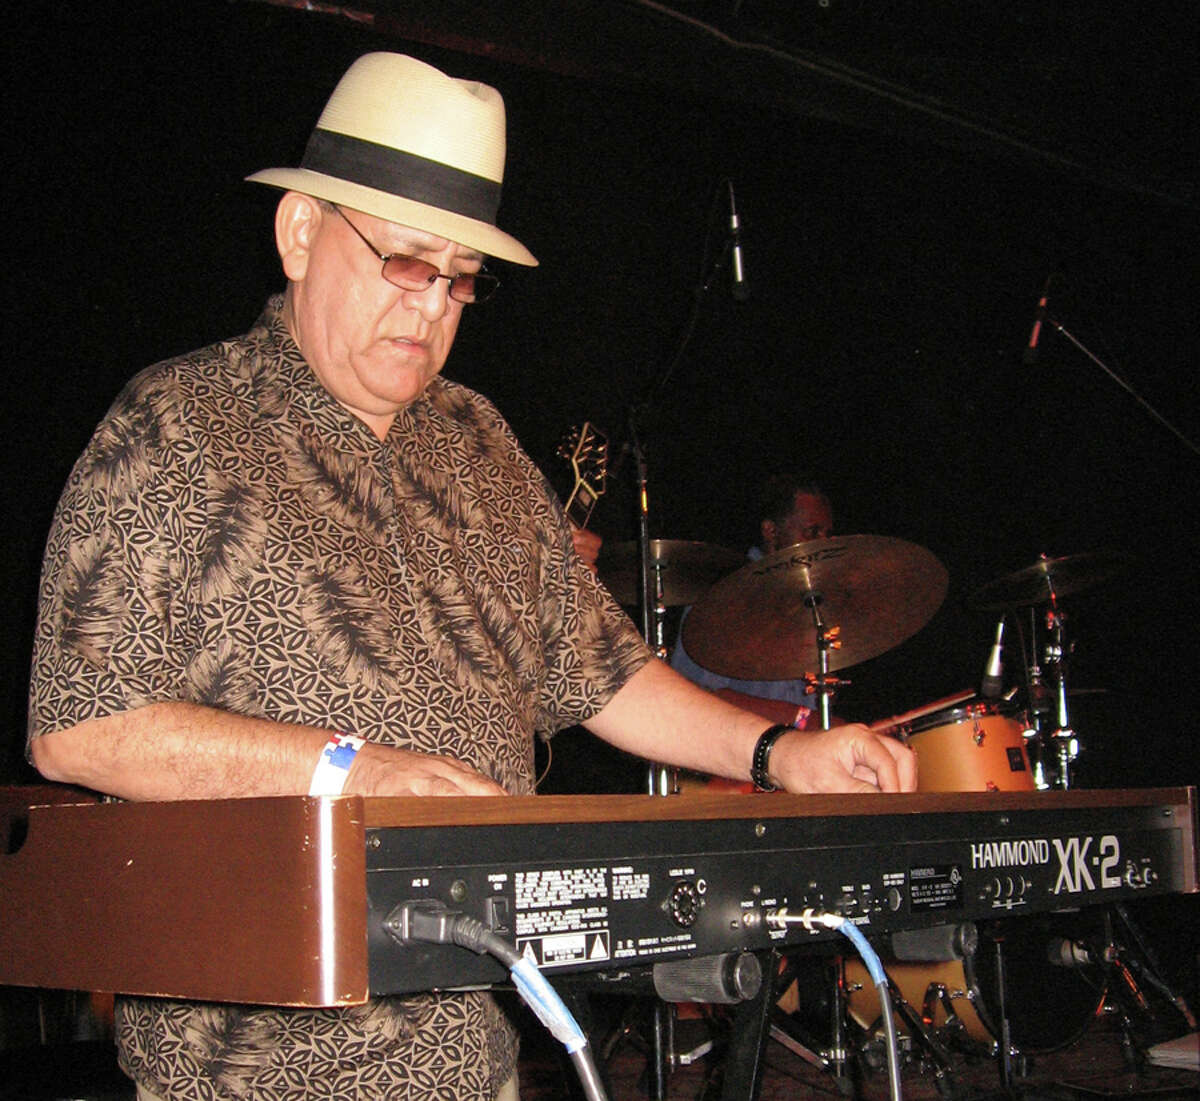 """Arturo """"Sauce"""" Gonzalez continues to play the fabled West Side Sound despite heart and kidney problems. JIM BEAL JR. / EXPRESS-NEWS"""